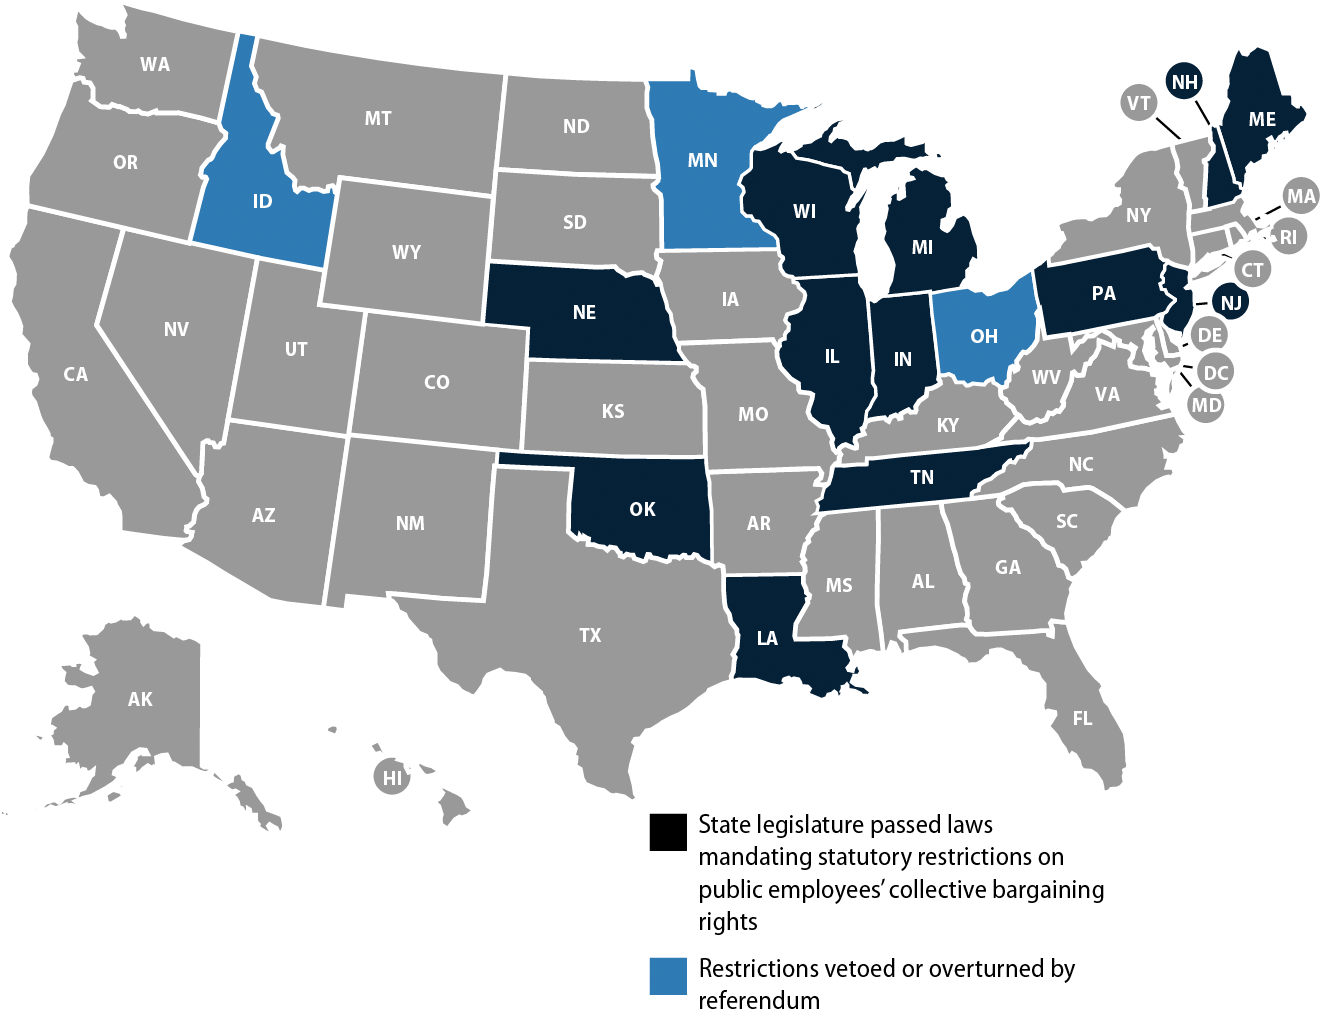 States that passed laws mandating permanent, statutory restrictions on public employees' collective bargaining rights, 2011–2012